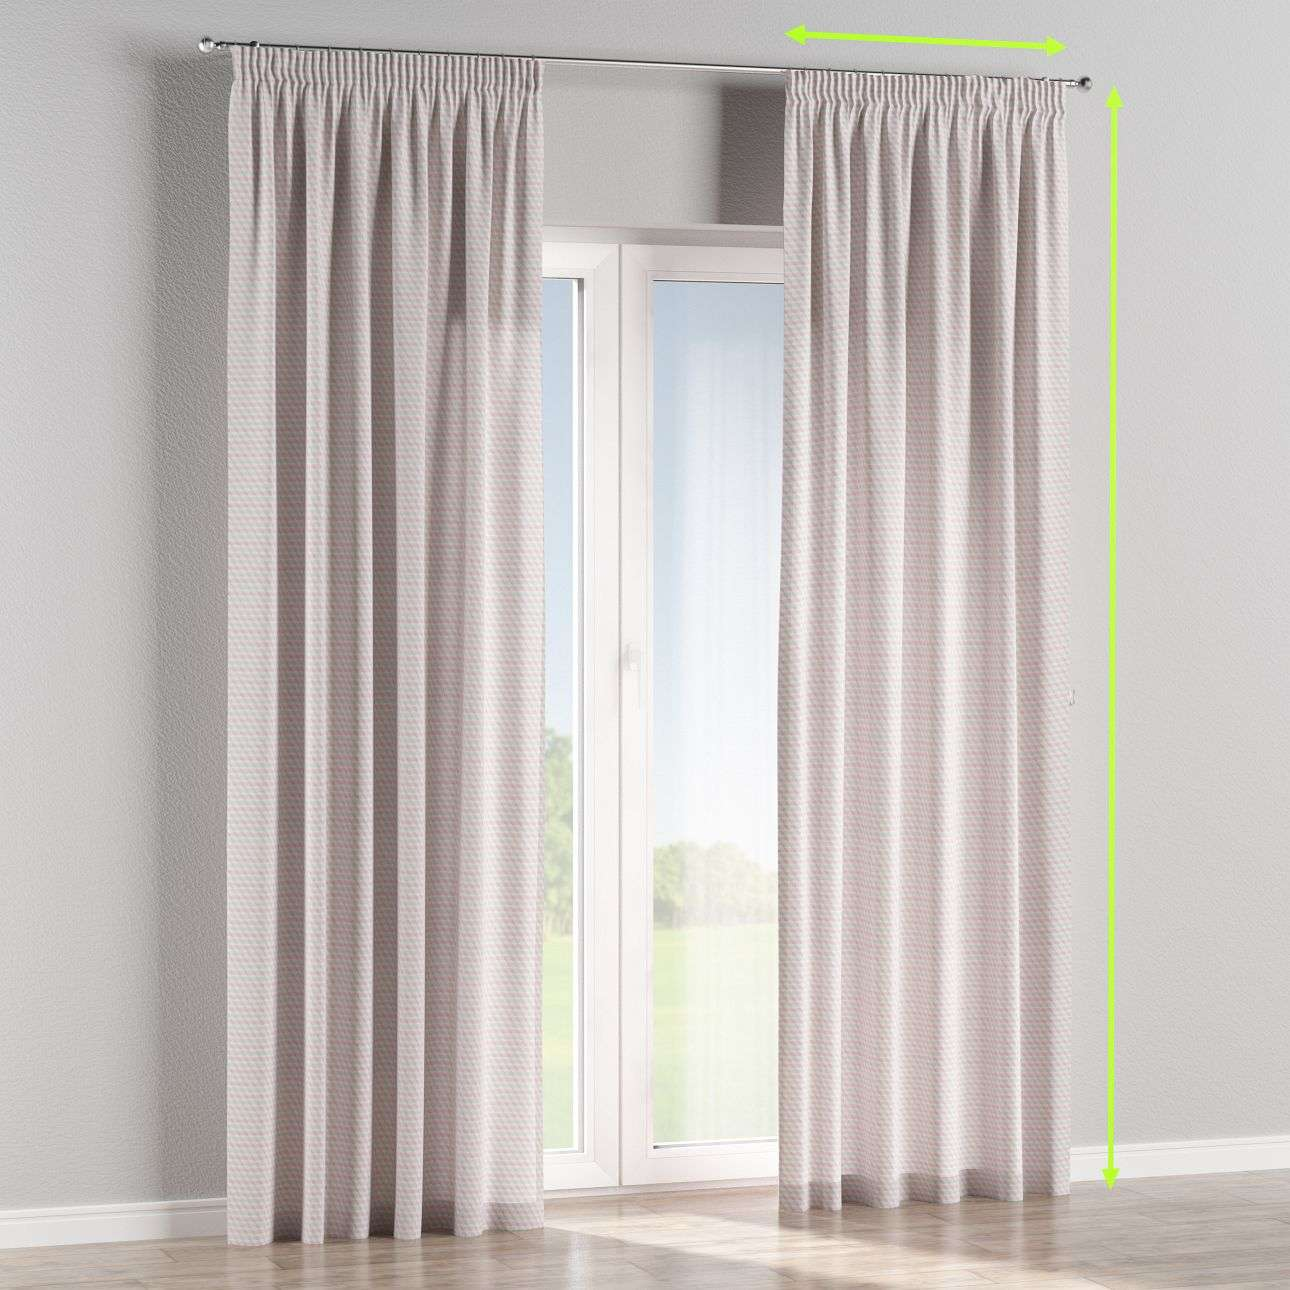 Pencil pleat curtains in collection Rustica, fabric: 140-30